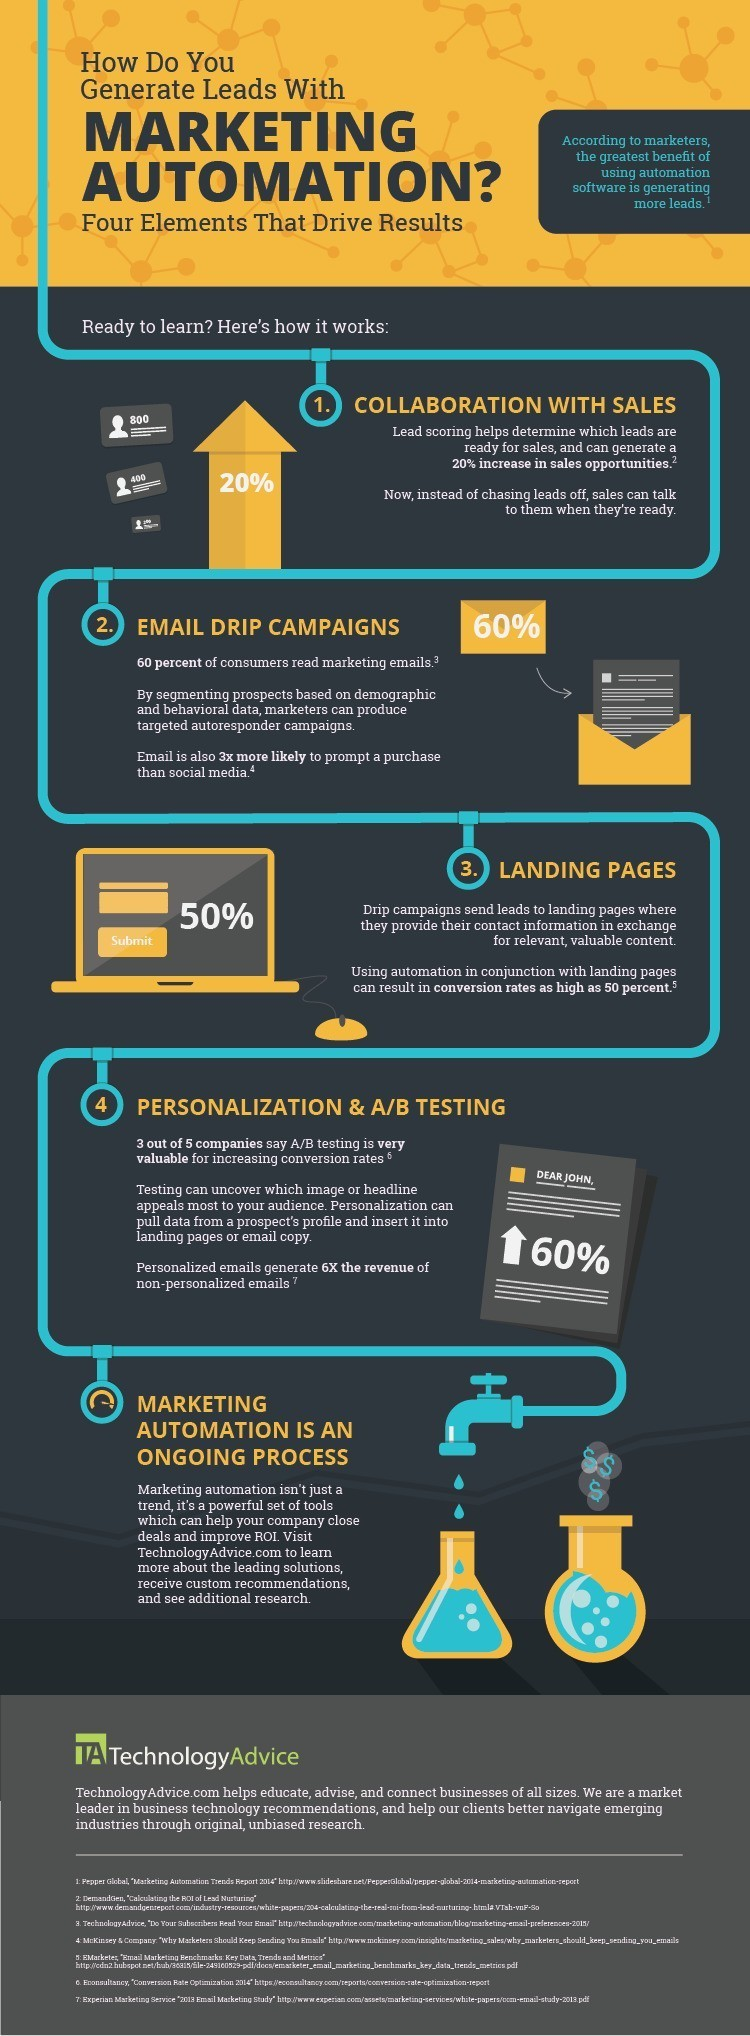 4 Ways to Generate Leads Using Marketing Automation (Infographic)